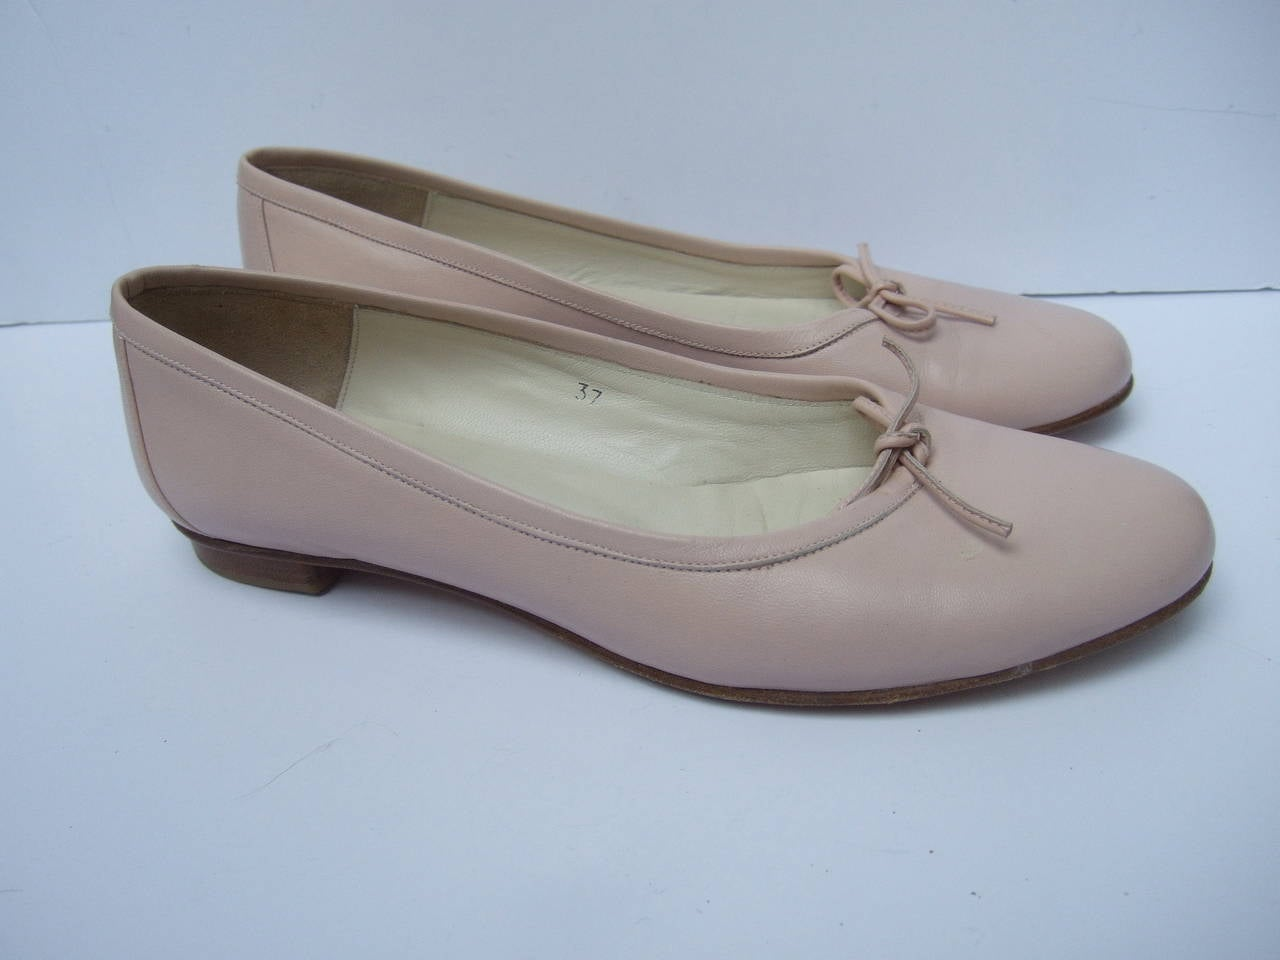 Burberry Blush Pink Leather Ballet Style Flats Size 37 For Sale 1